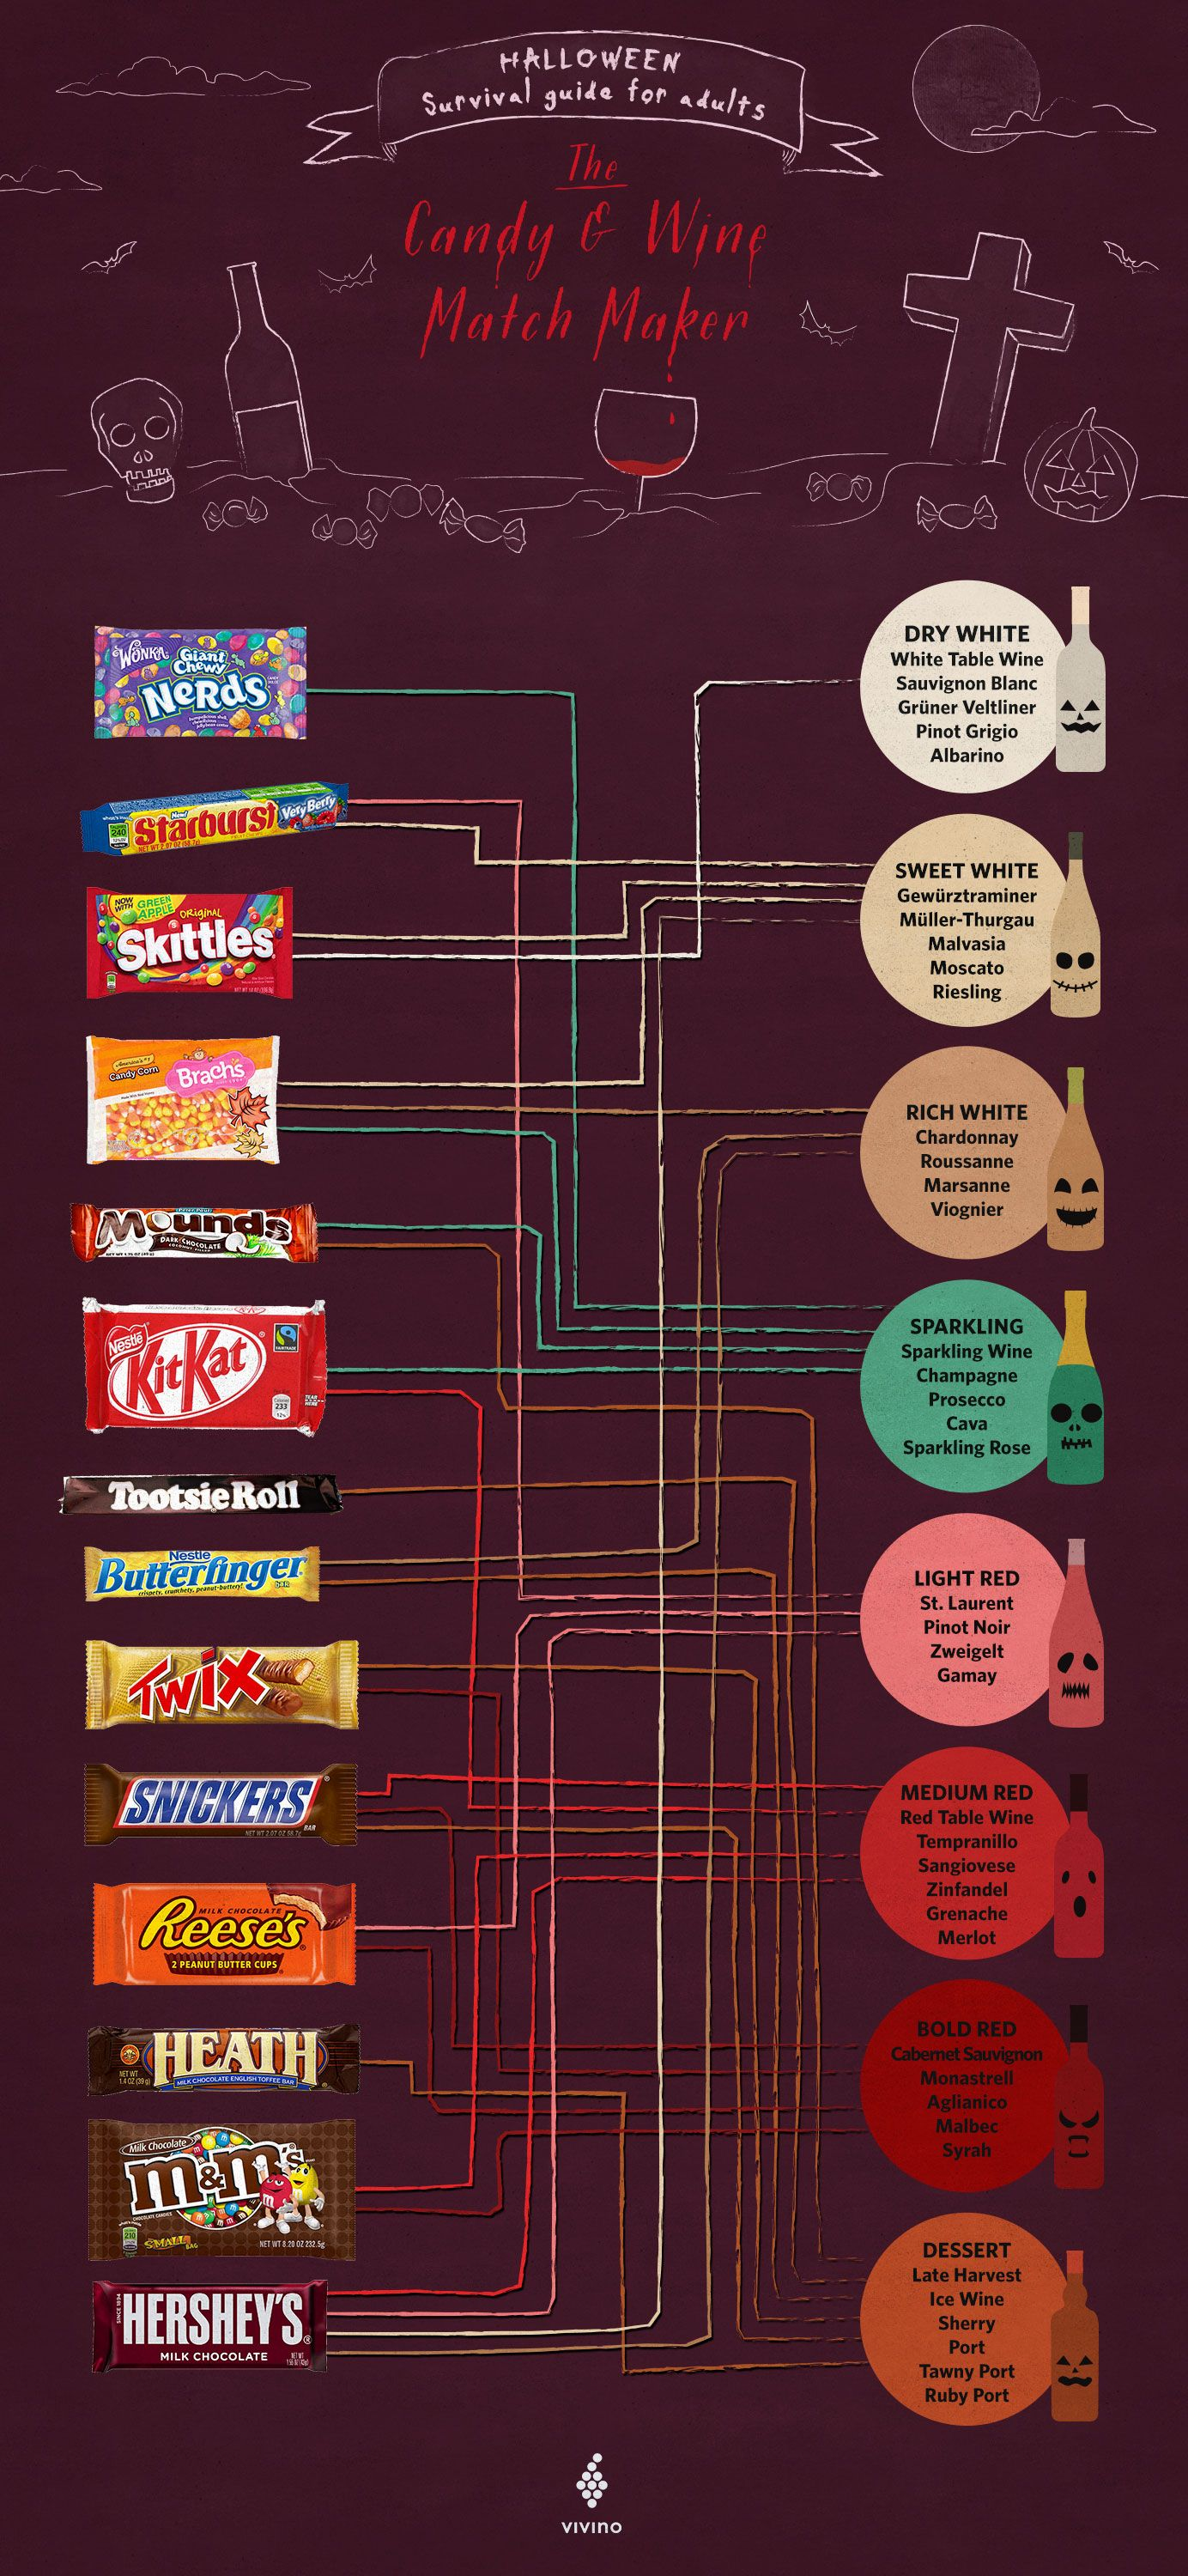 An Important Halloween Related Question Answered | Wine, Halloween ...